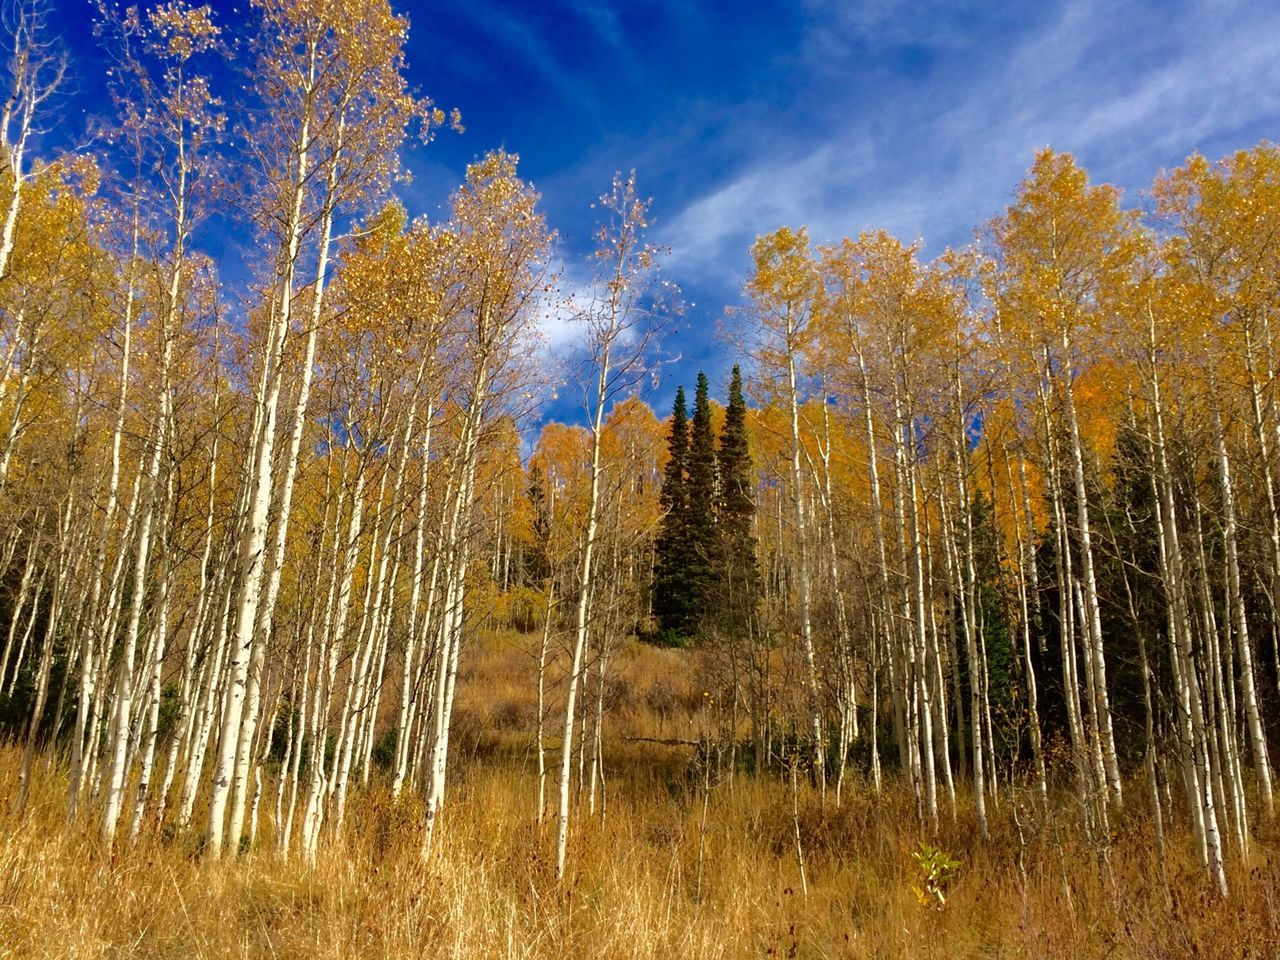 Aspens in fall Aspens Aspen Trees Trees Millcreekcanyon Utah United States Hike Fall Fall Beauty Fall Colors Fall Leaves Sky Onthetrail Outdoors Outandabout Group Of Trees IPhoneography